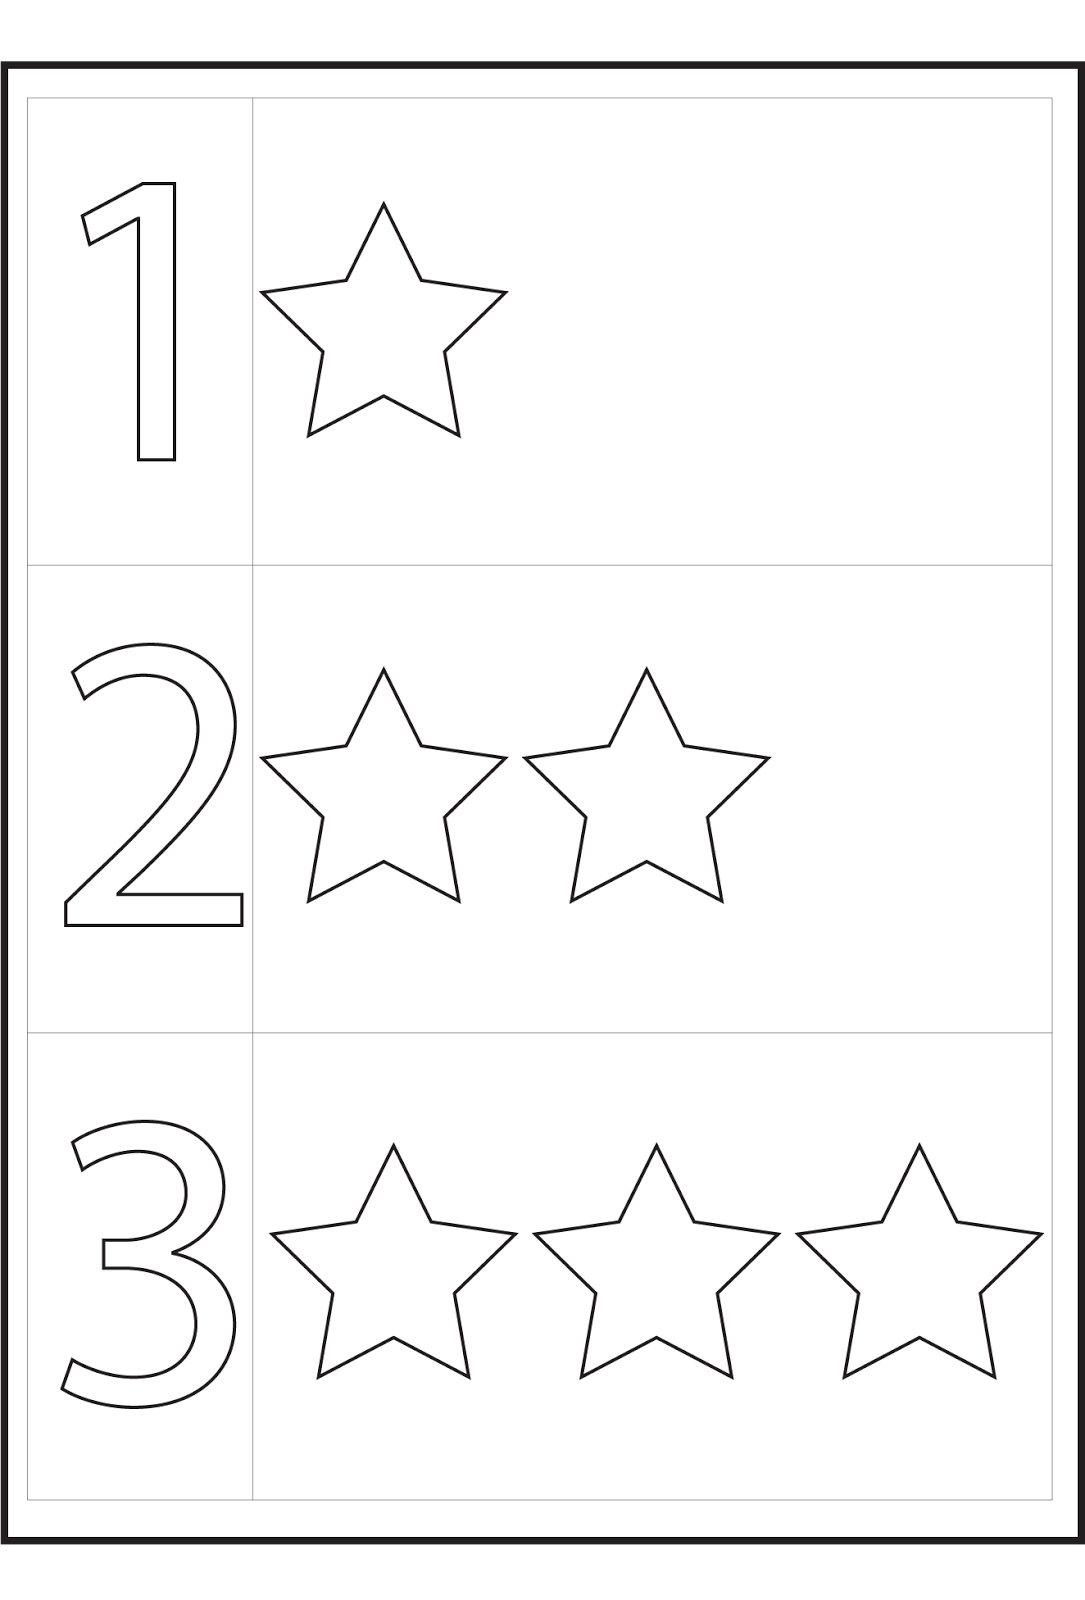 worksheets for 4 year olds stars